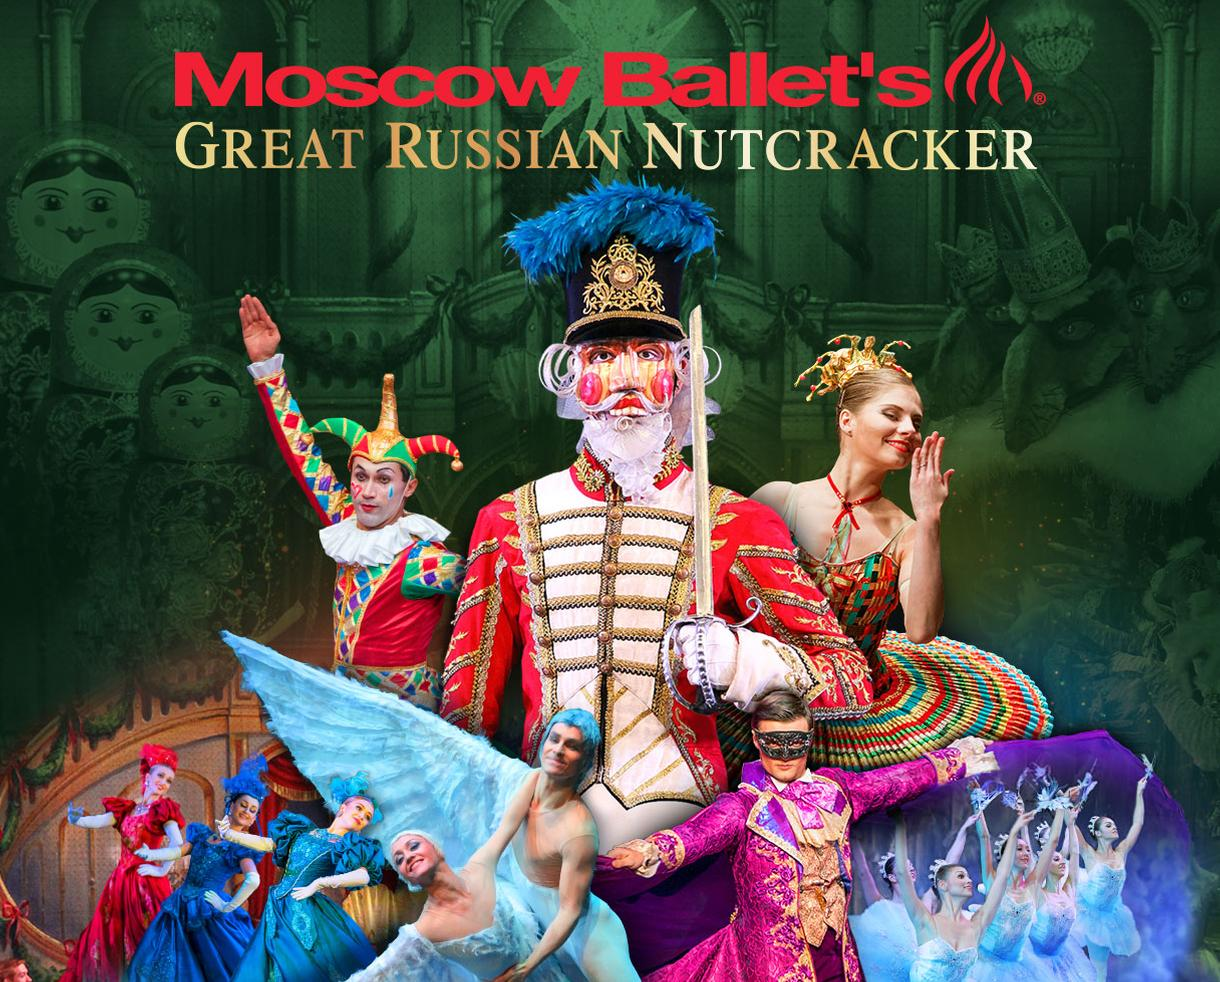 The Moscow Ballet's Great Russian Nutcracker at The Barbara B. Mann Performing Arts Hall